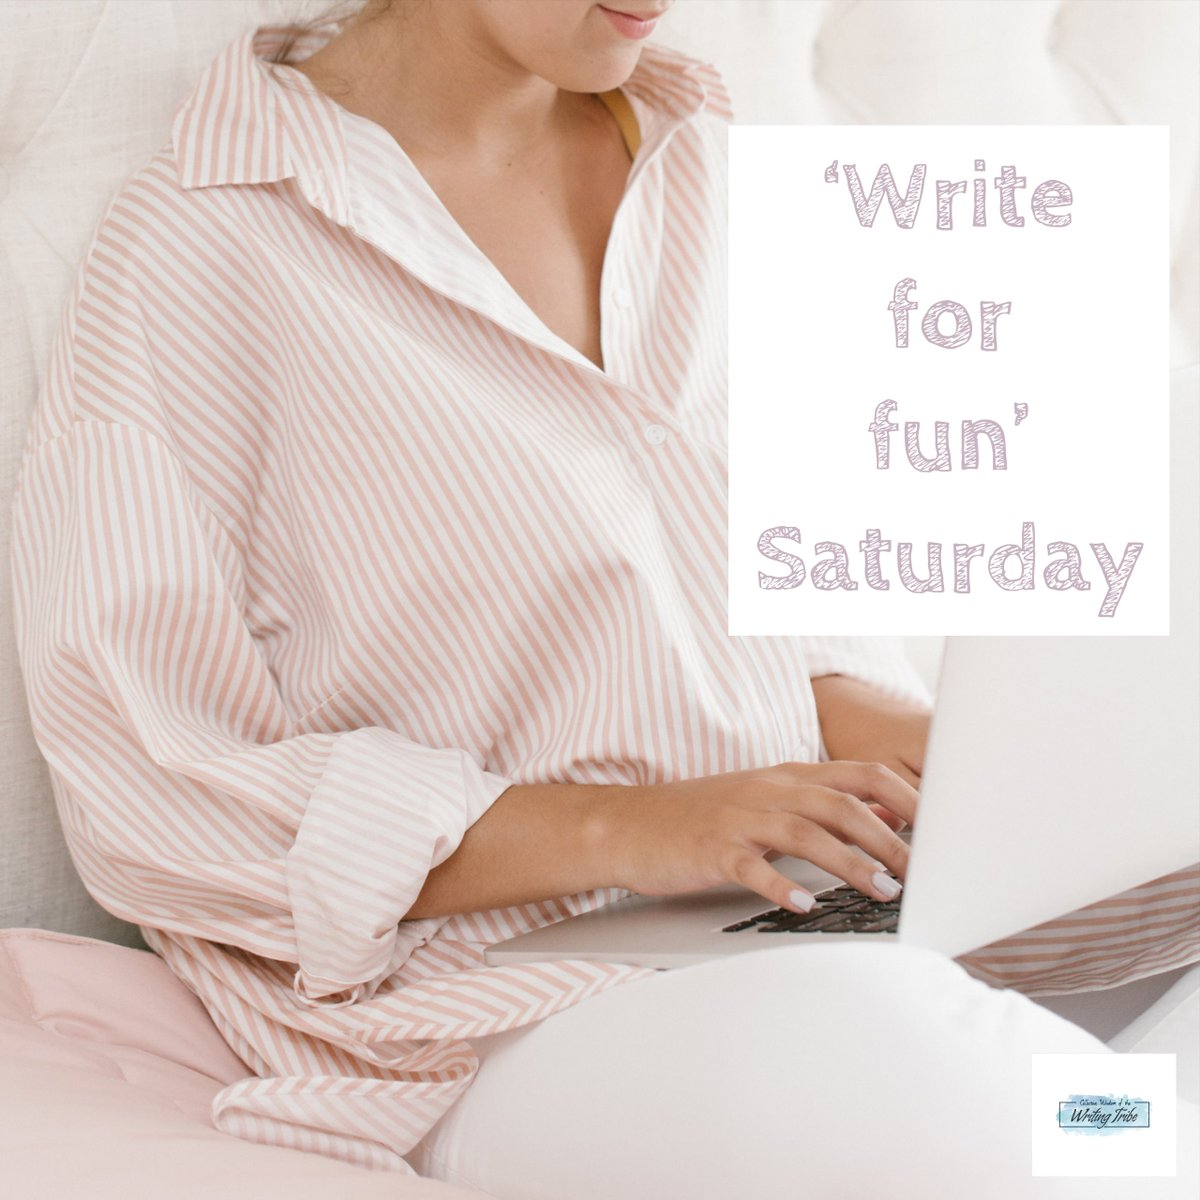 My amazing Writing Tribe has 'Write for Fun' every Saturday.  Join us :-) #writingcommunity #amwriting #WIP https://www.facebook.com/groups/NicolesWritingTribe/…